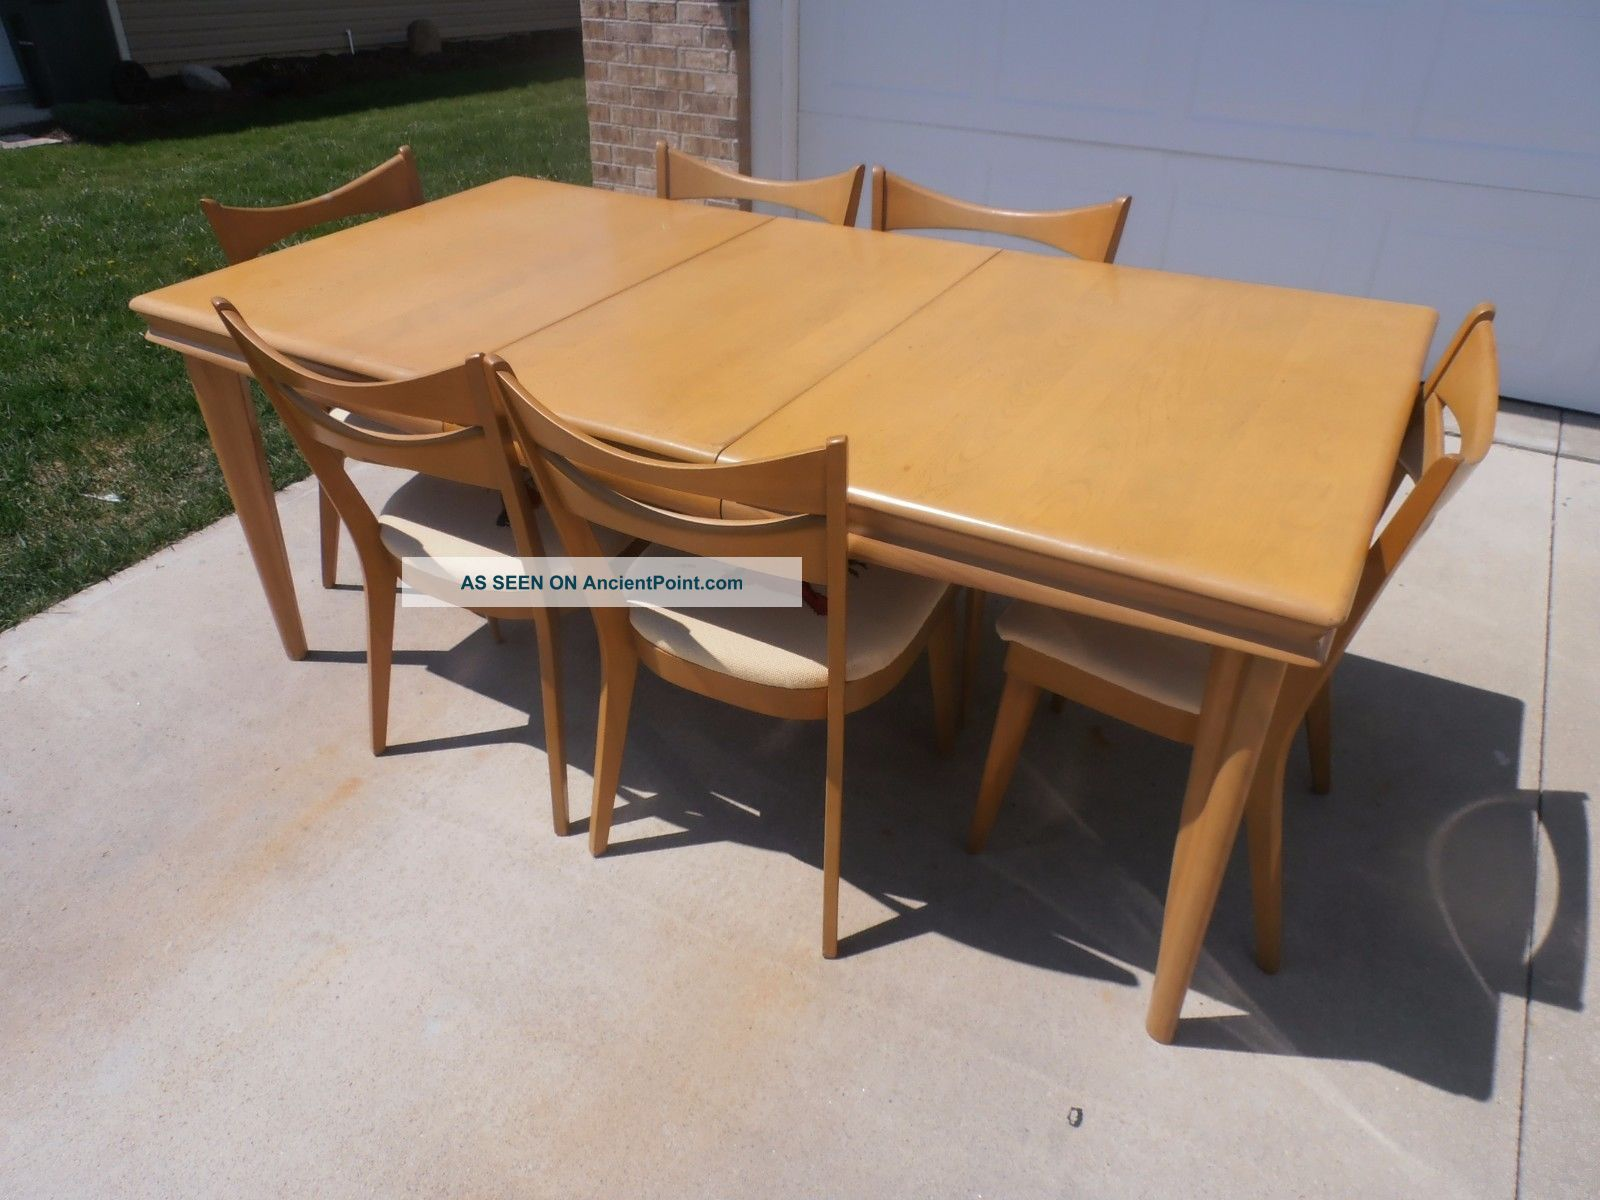 & Heywood Wakefield Dining Table With 6 Chairs Wheat